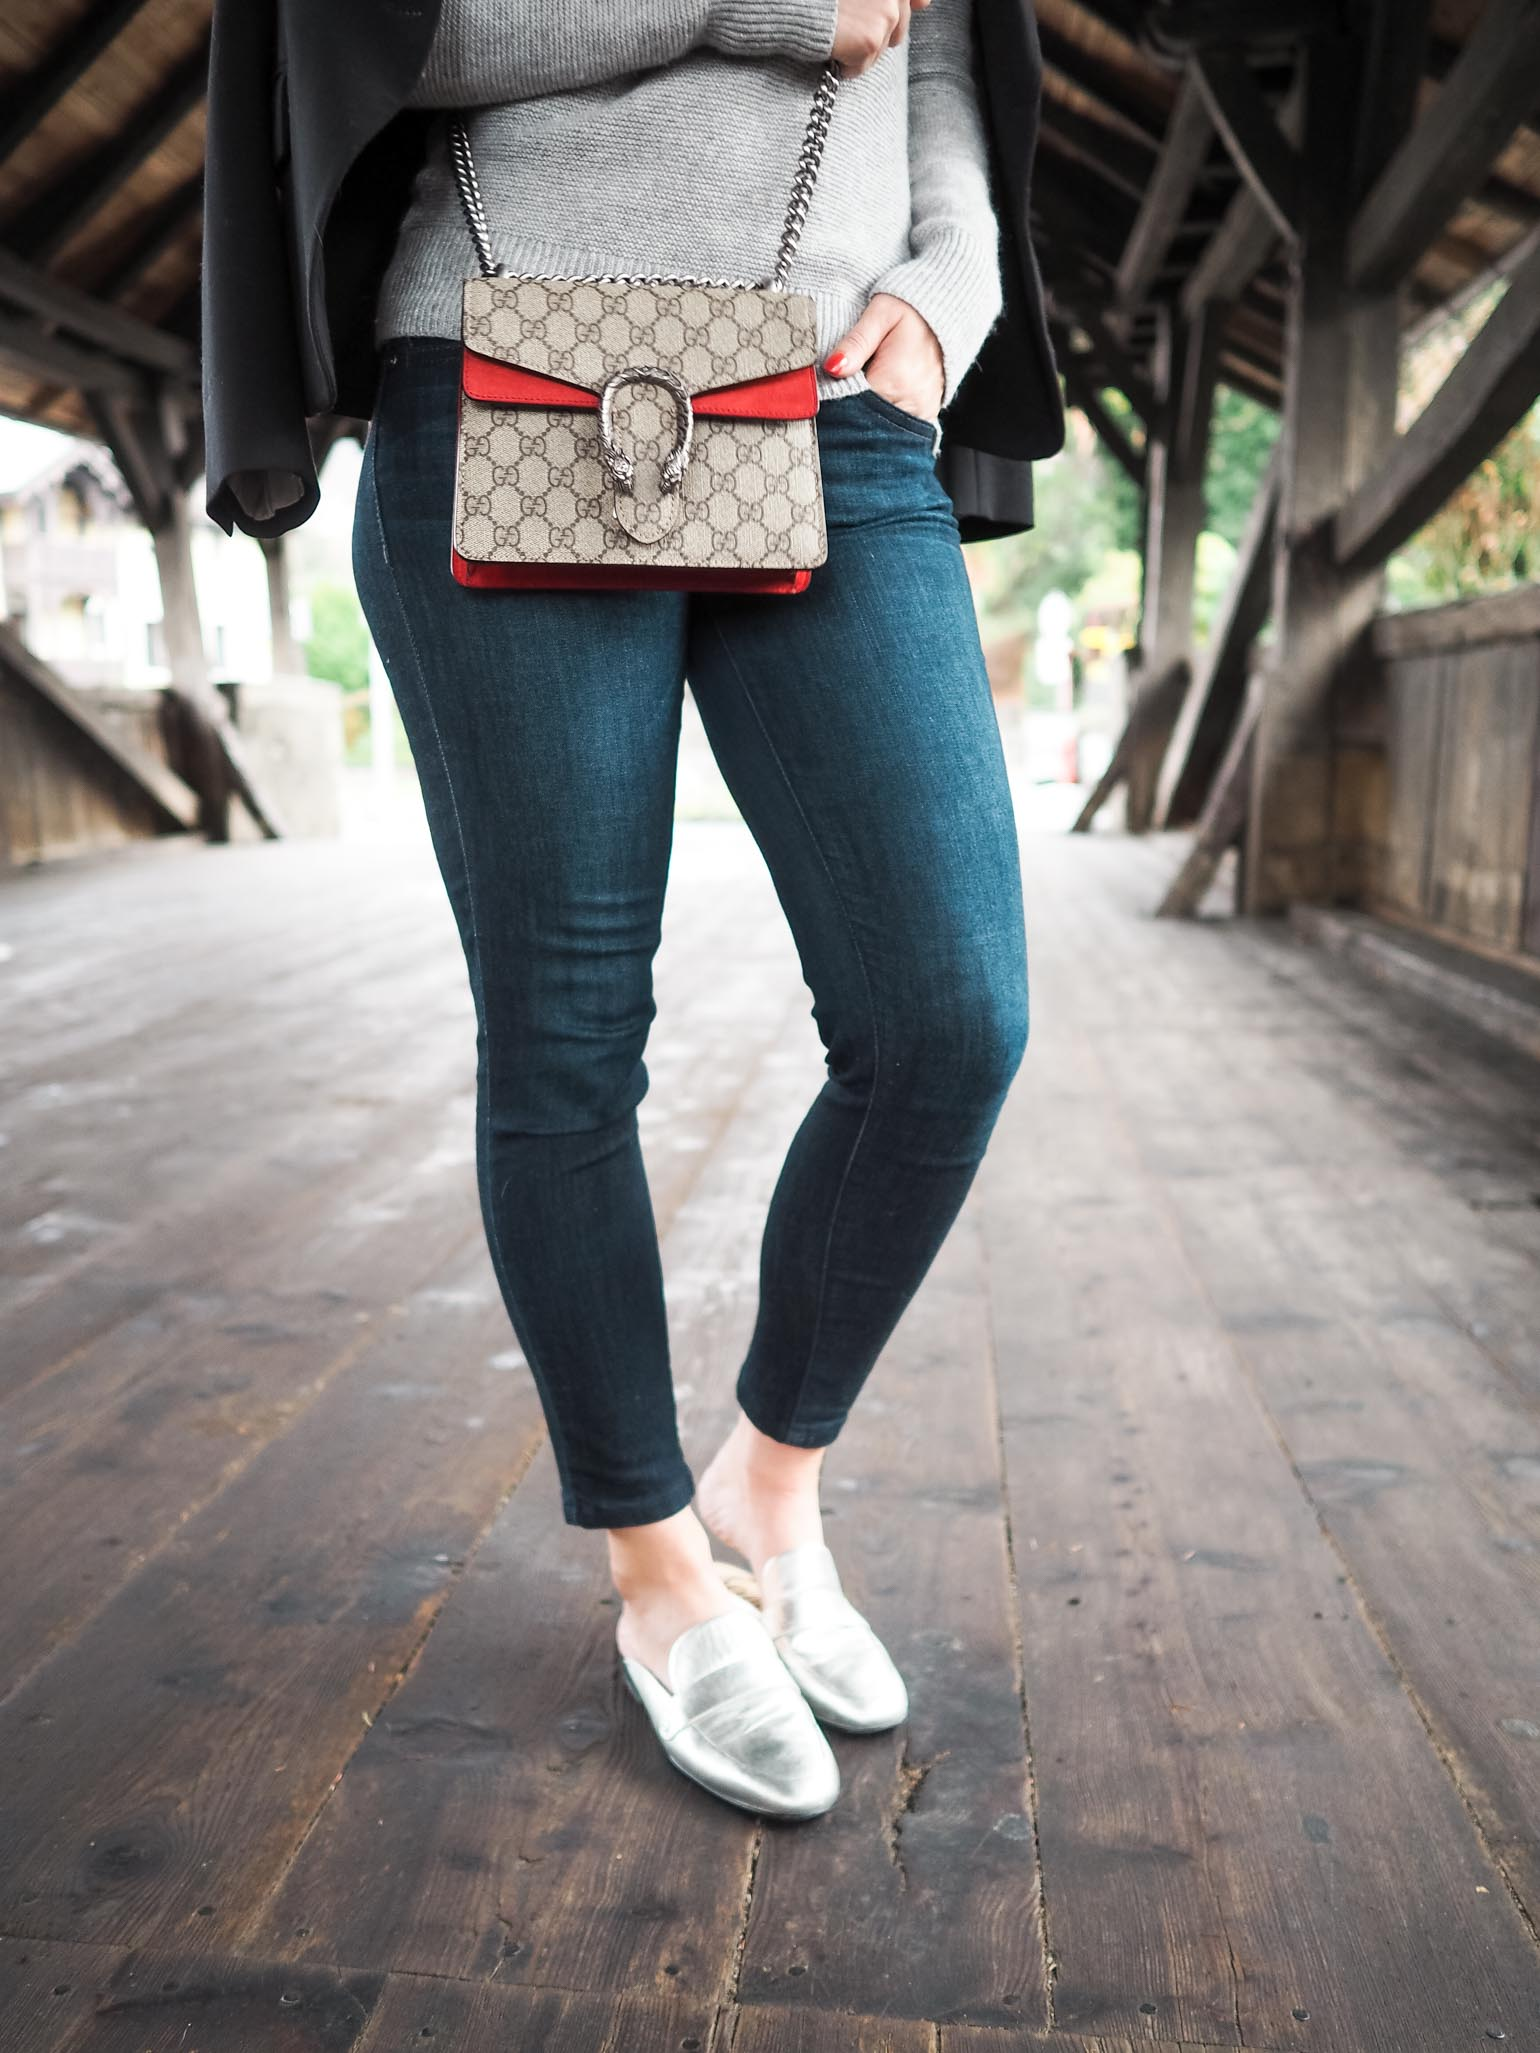 Cristina from The Brunette Nomad, a Dallas fashion blogger living in Switzerland, is styling a tone on tone look with a grey Banana Republic sweater and silver metallic Sam Edelman mules